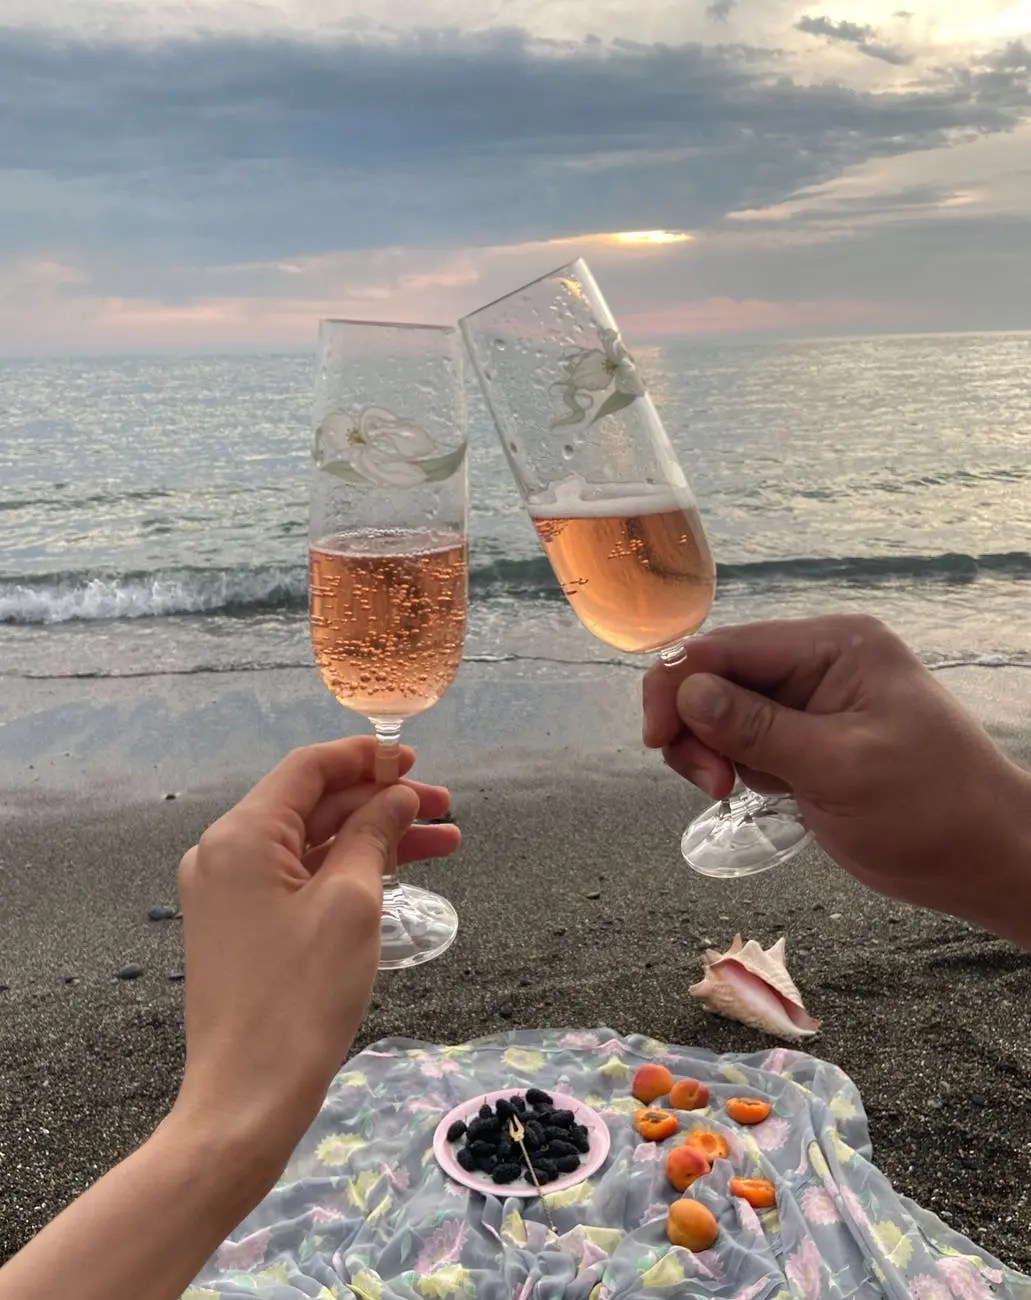 10 Ideas for valentines day at home  - recreating your first date, beach picnic